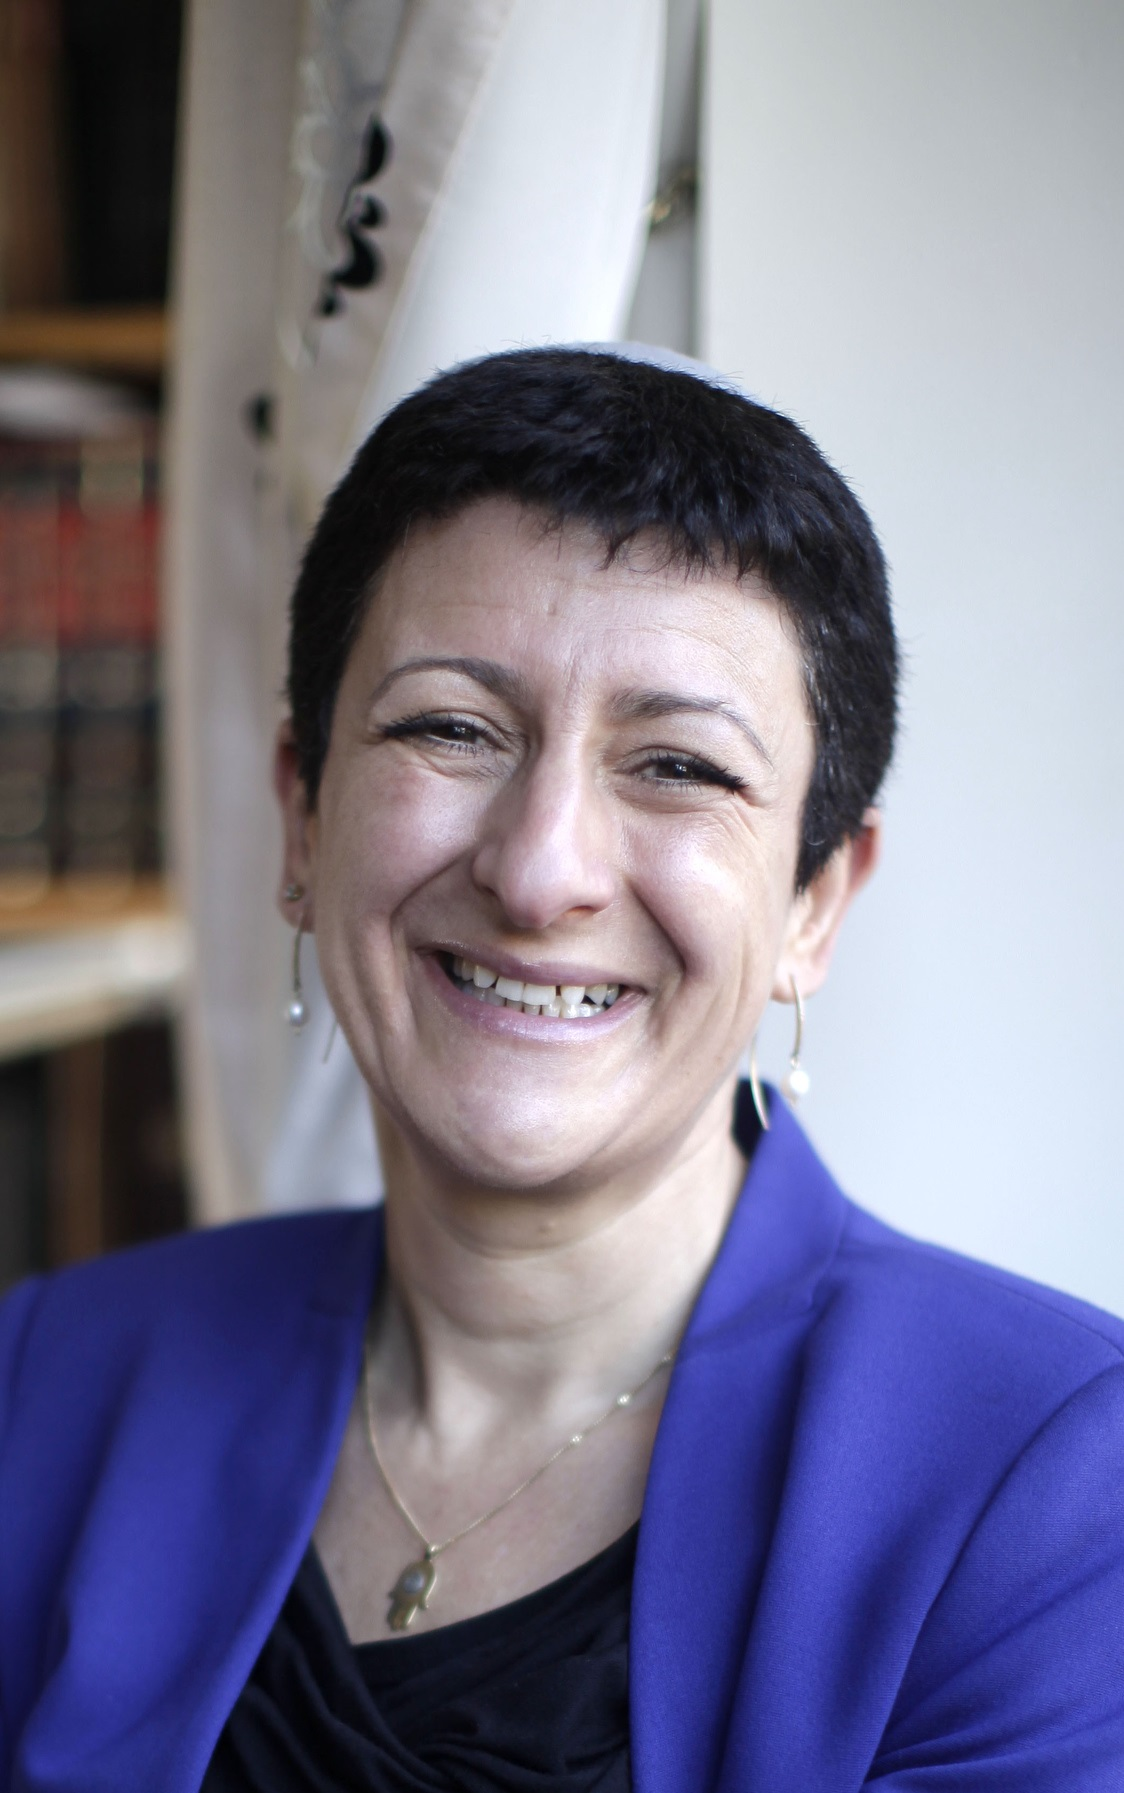 Rabbi Laura Janner-Klausner attacks the Belz